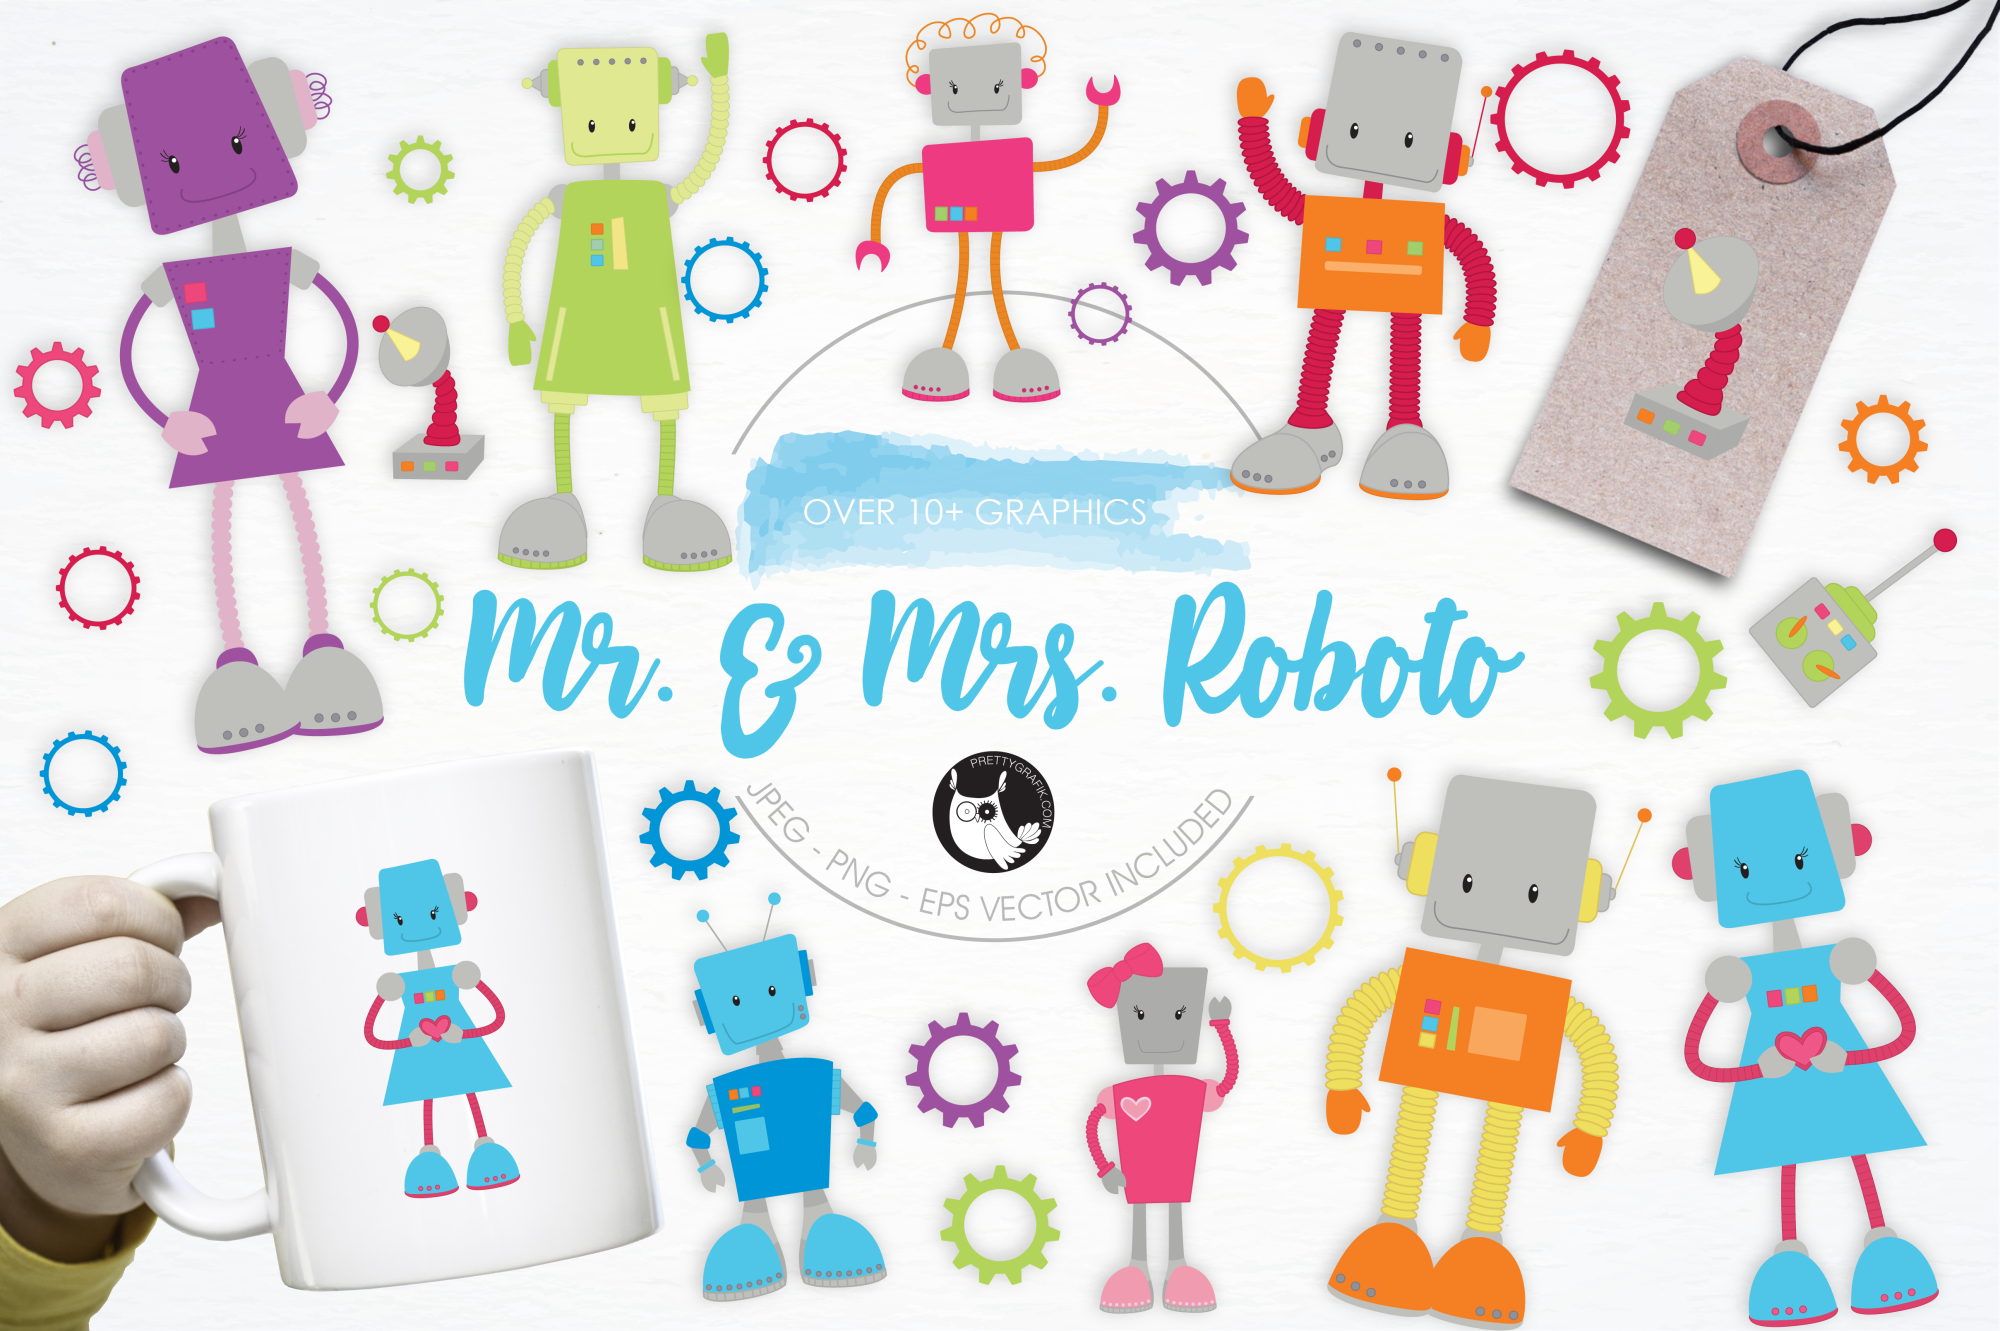 Mr. & Mrs. Roboto graphics and illustrations example image 1